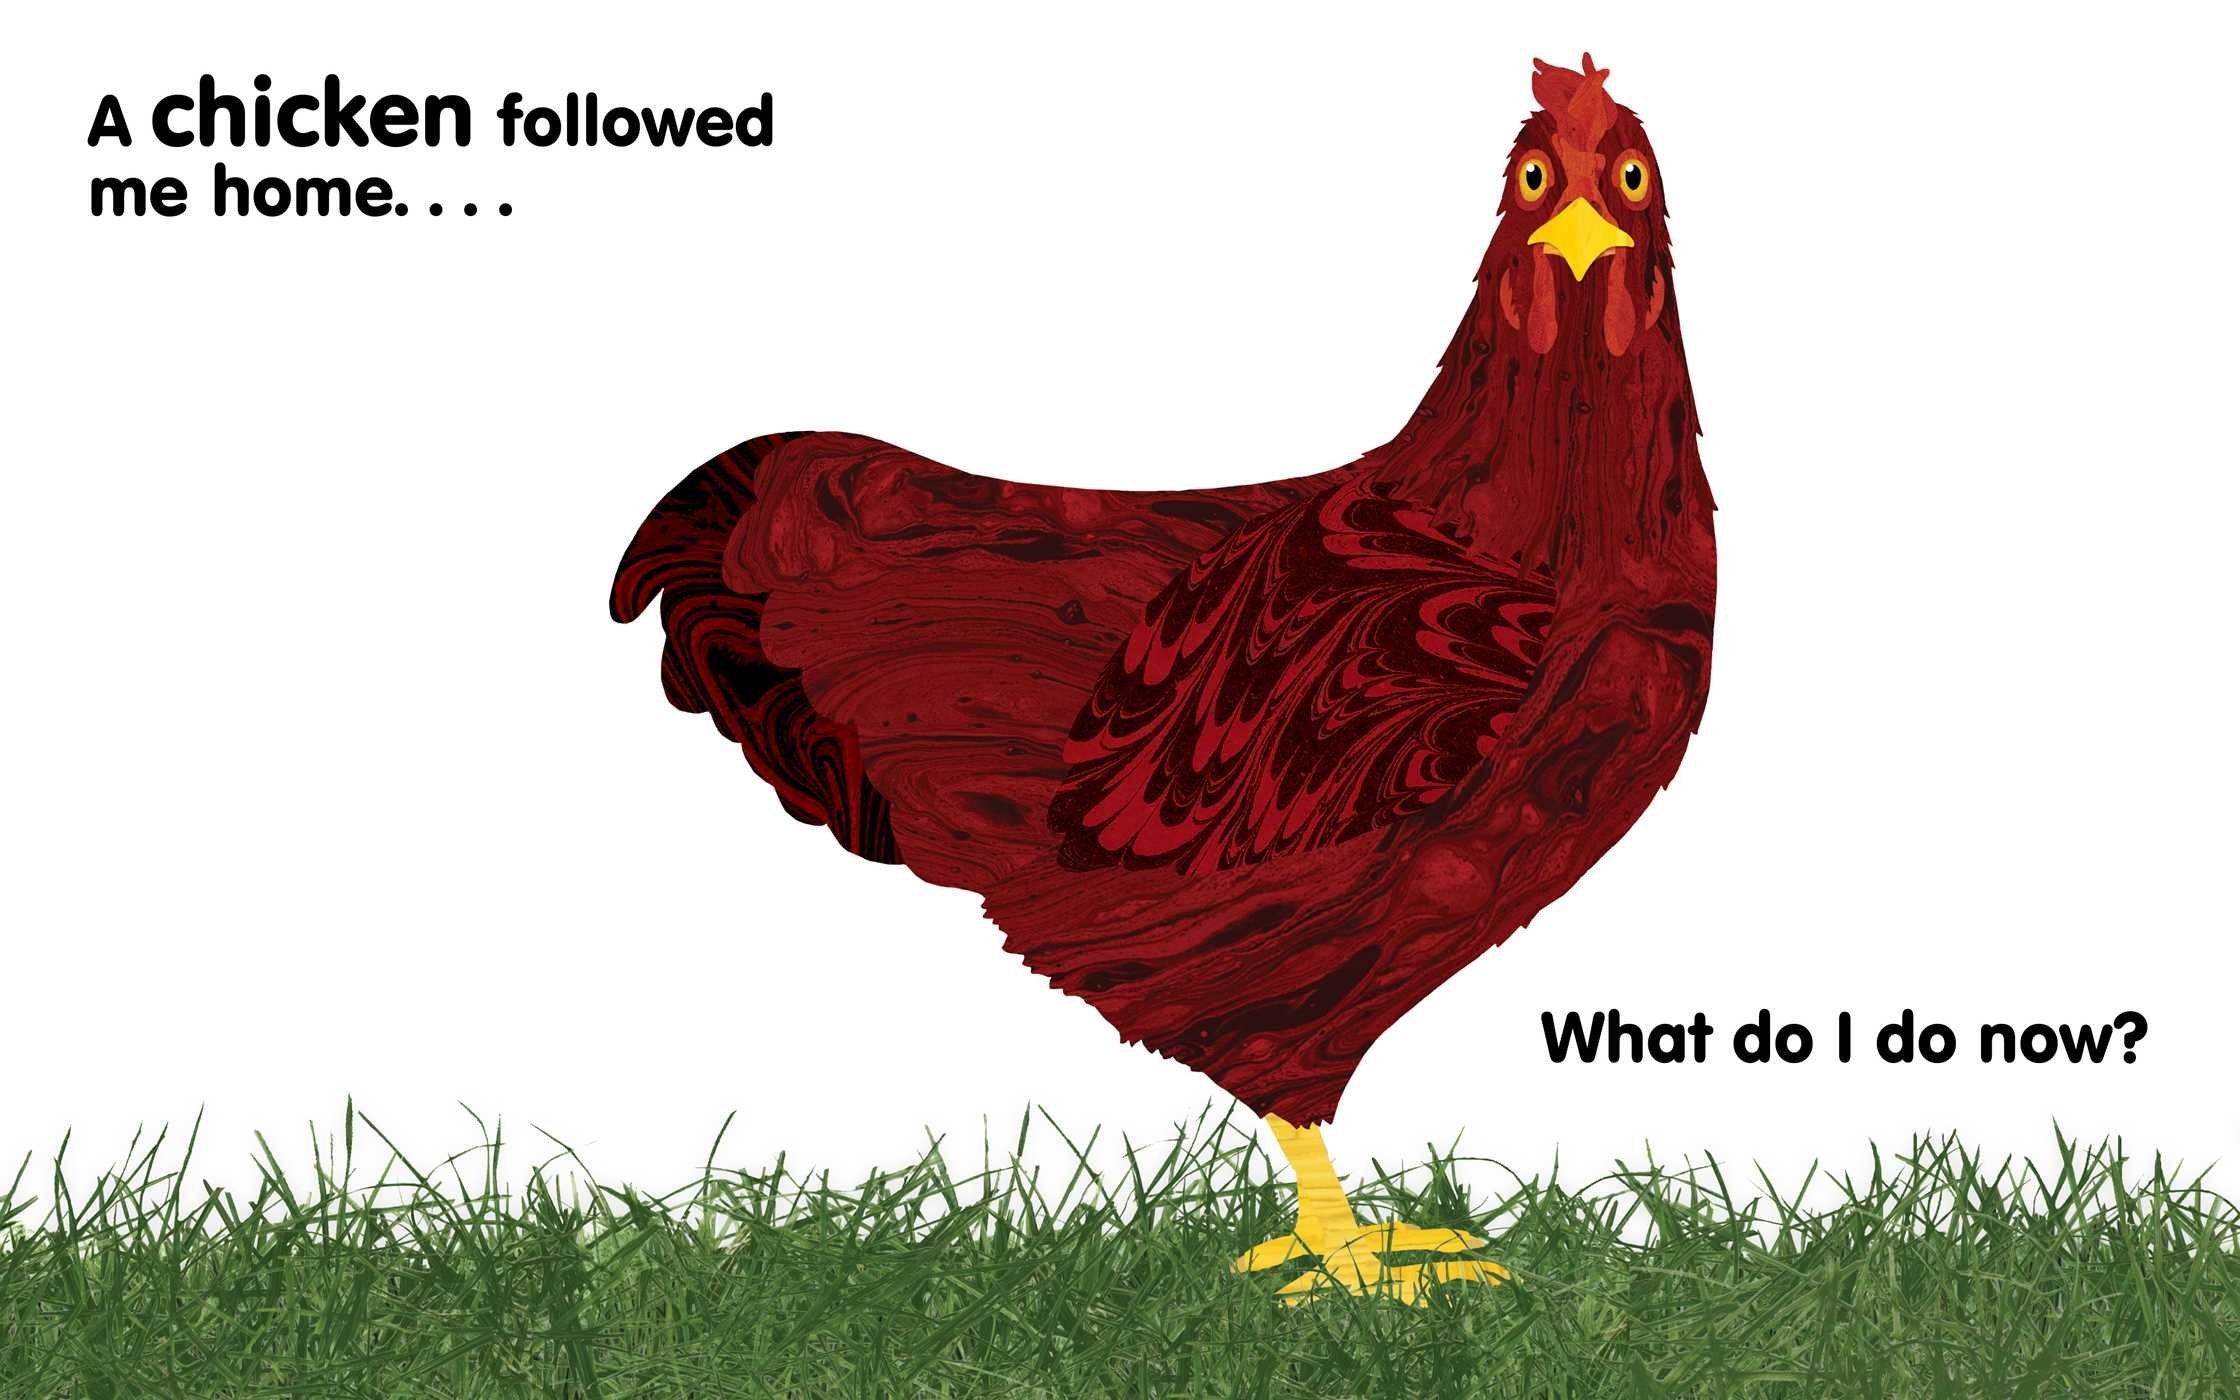 a chicken followed me home questions and answers about a